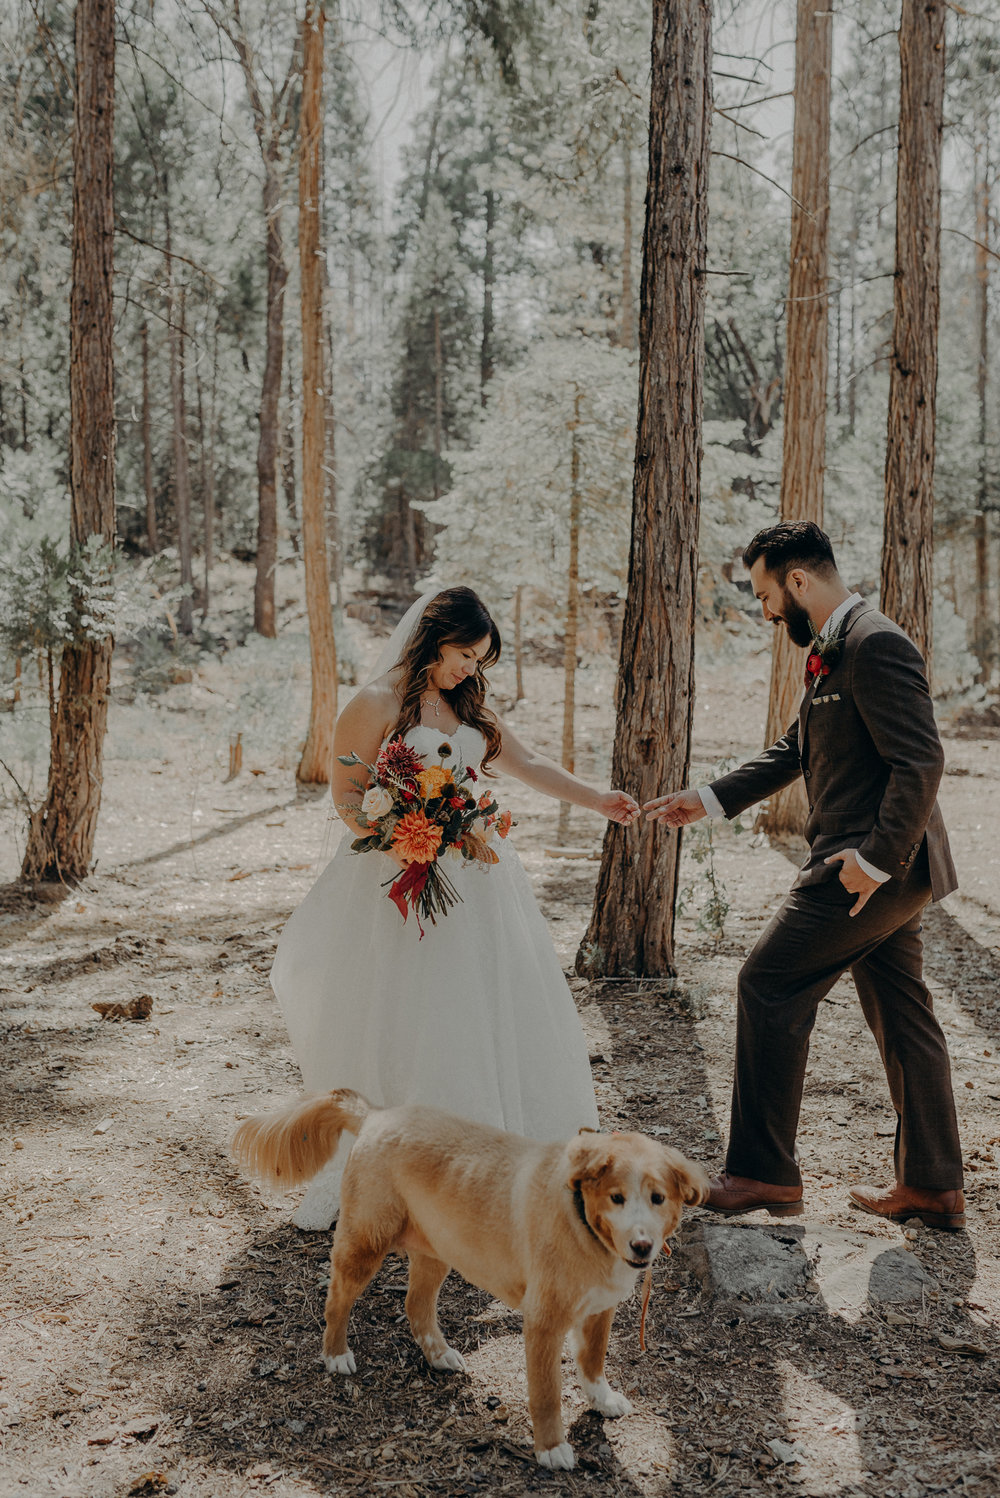 Yosemite Elopement Photographer - Evergreen Lodge Wedding Photographer - IsaiahAndTaylor.com-075.jpg